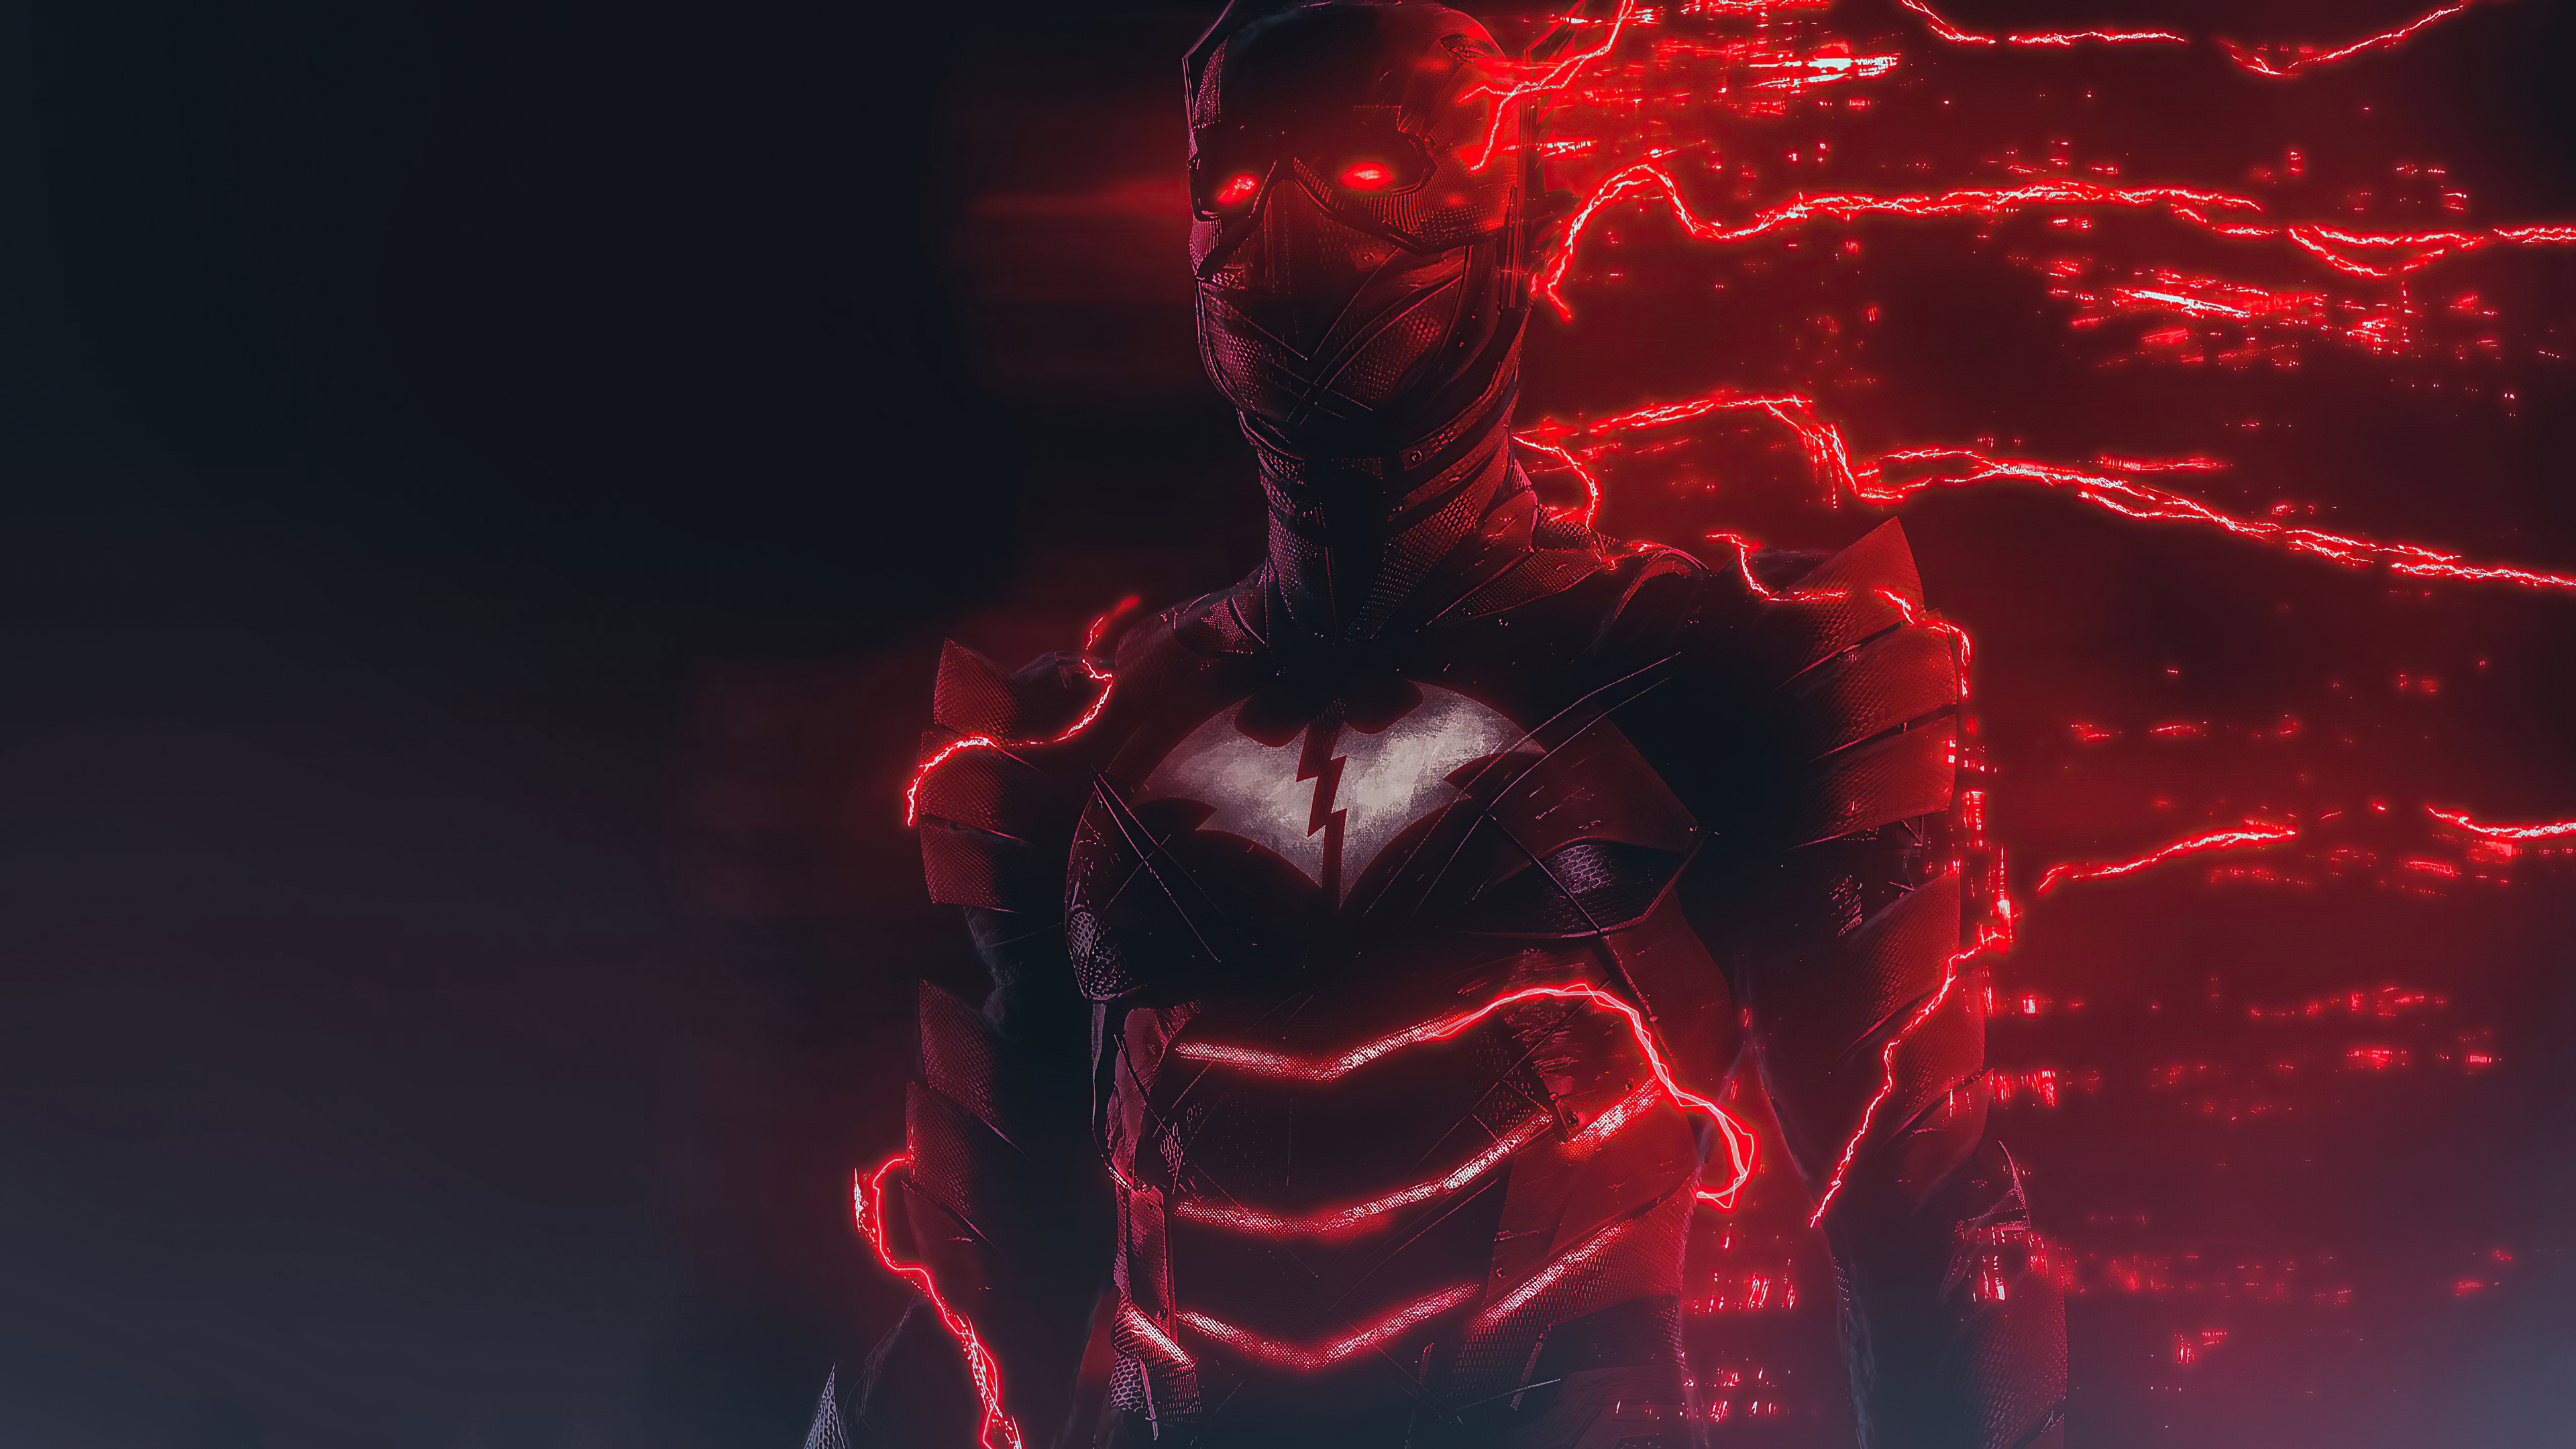 Batman The Red Death Hd Superheroes 4k Wallpapers Images Backgrounds Photos And Pictures